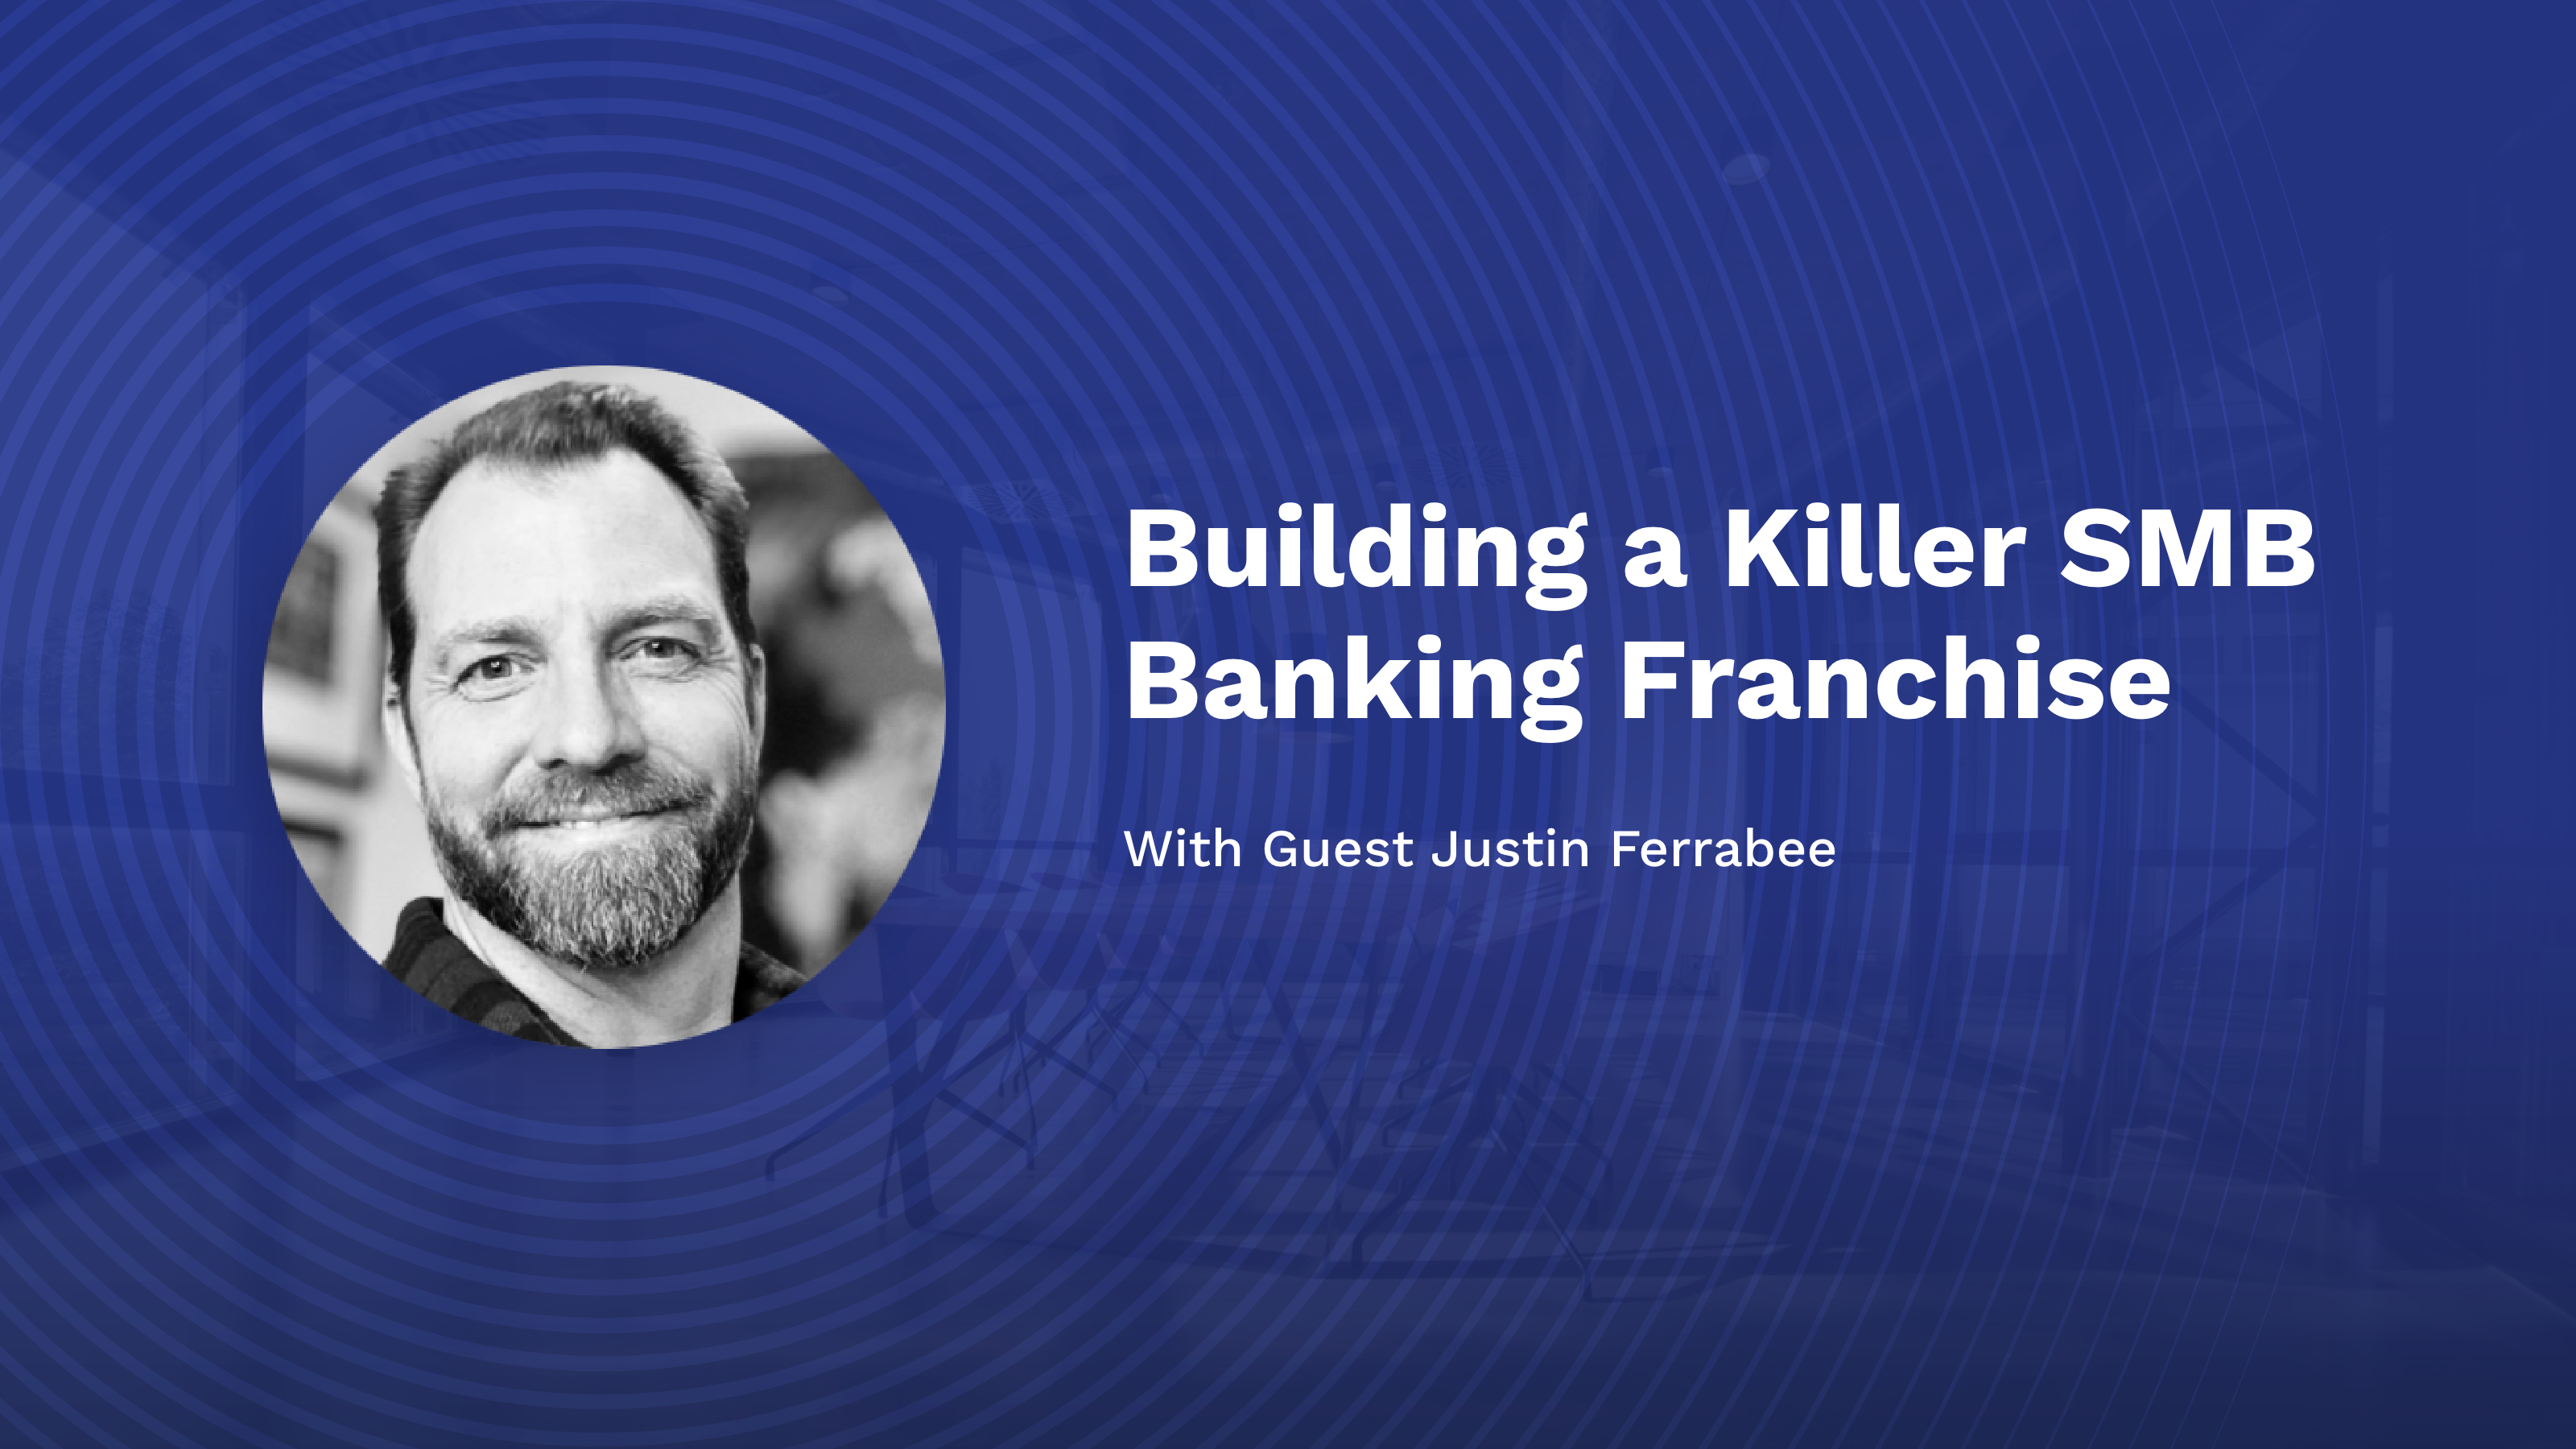 Building a Killer SMB Banking Franchise with Justin Ferrabee